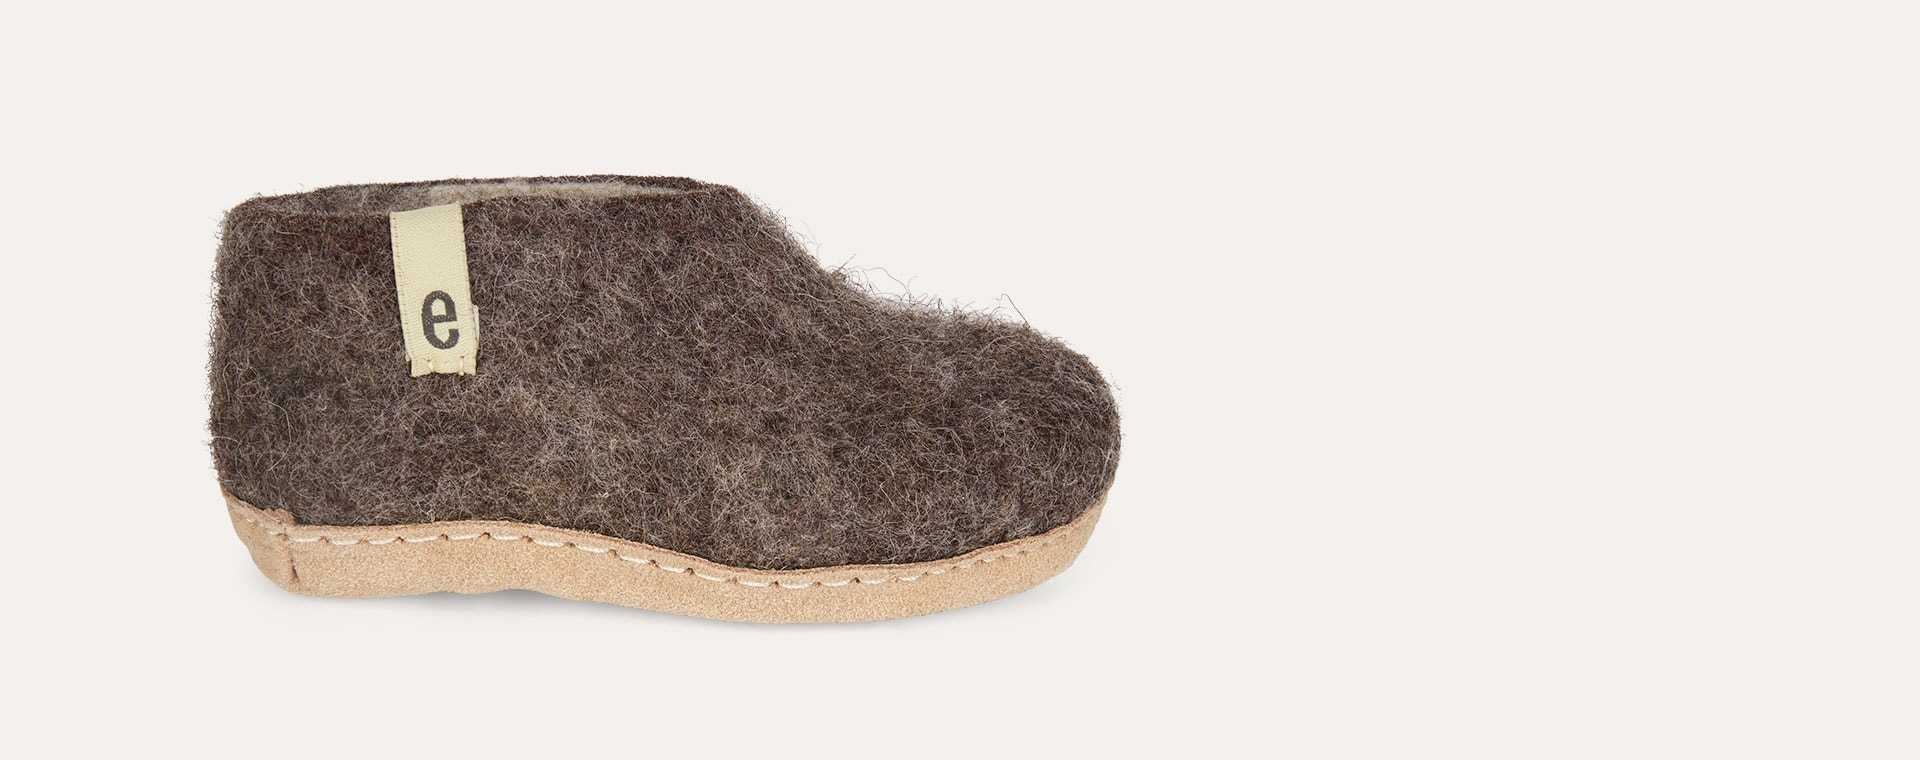 Natural Brown Egos Copenhagen Slipper Shoe